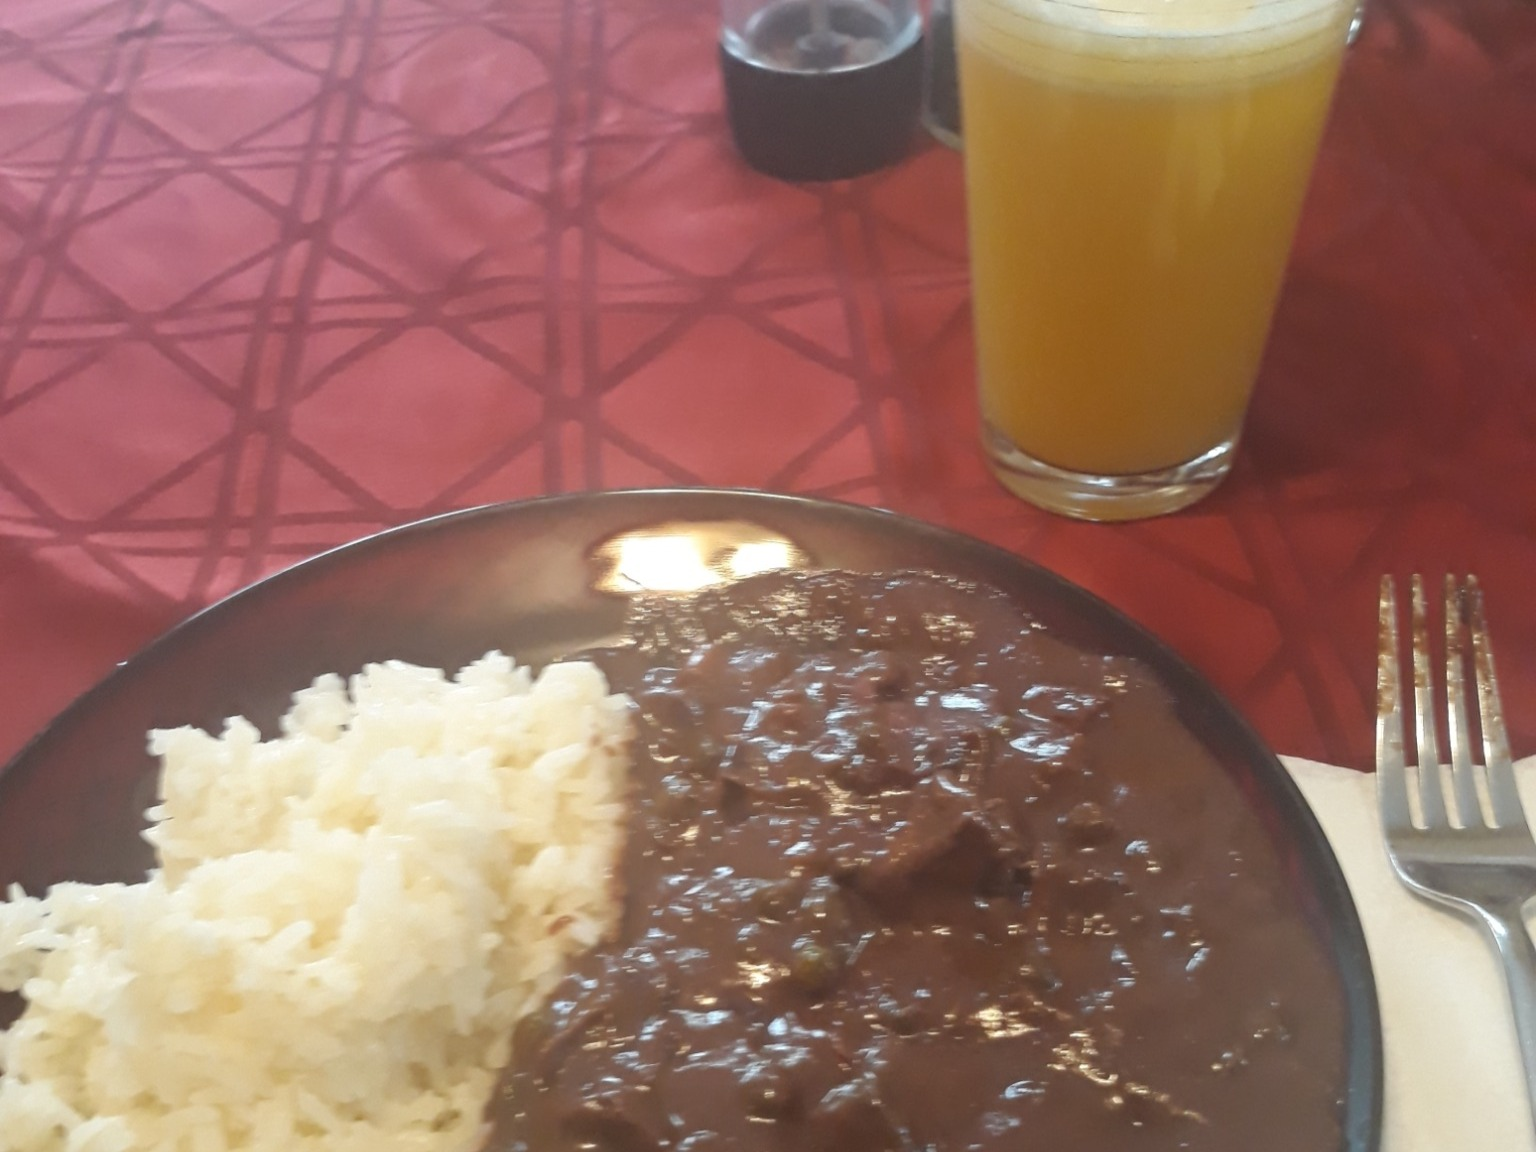 Monster Curry and an Estus Flask